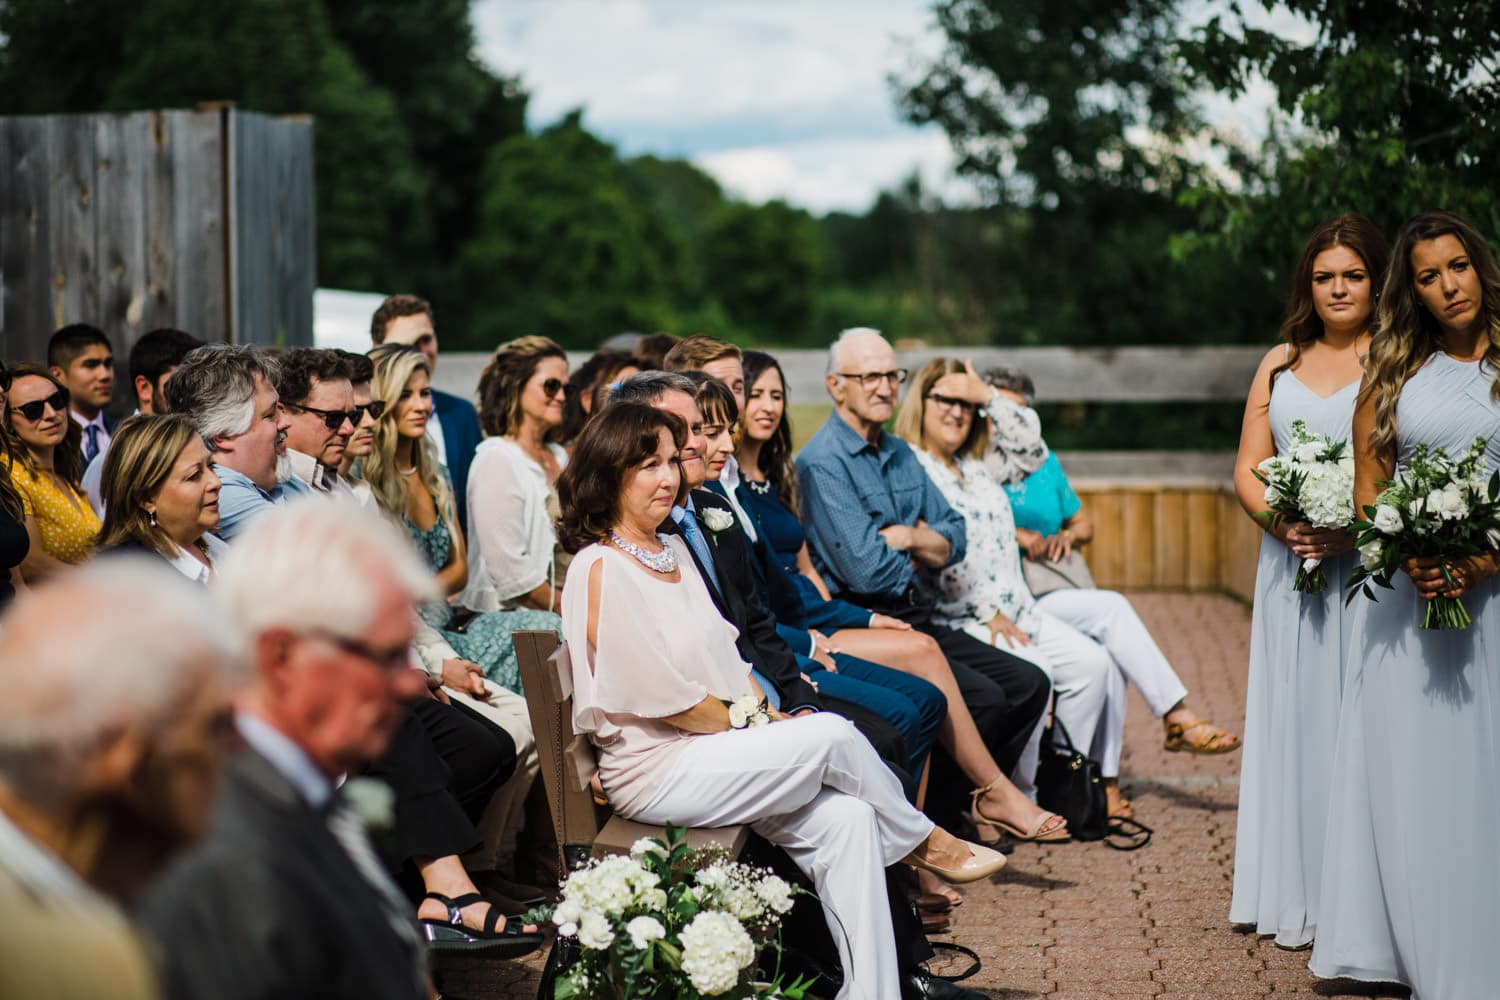 parents of groom take in the ceremony - summer strathmere wedding